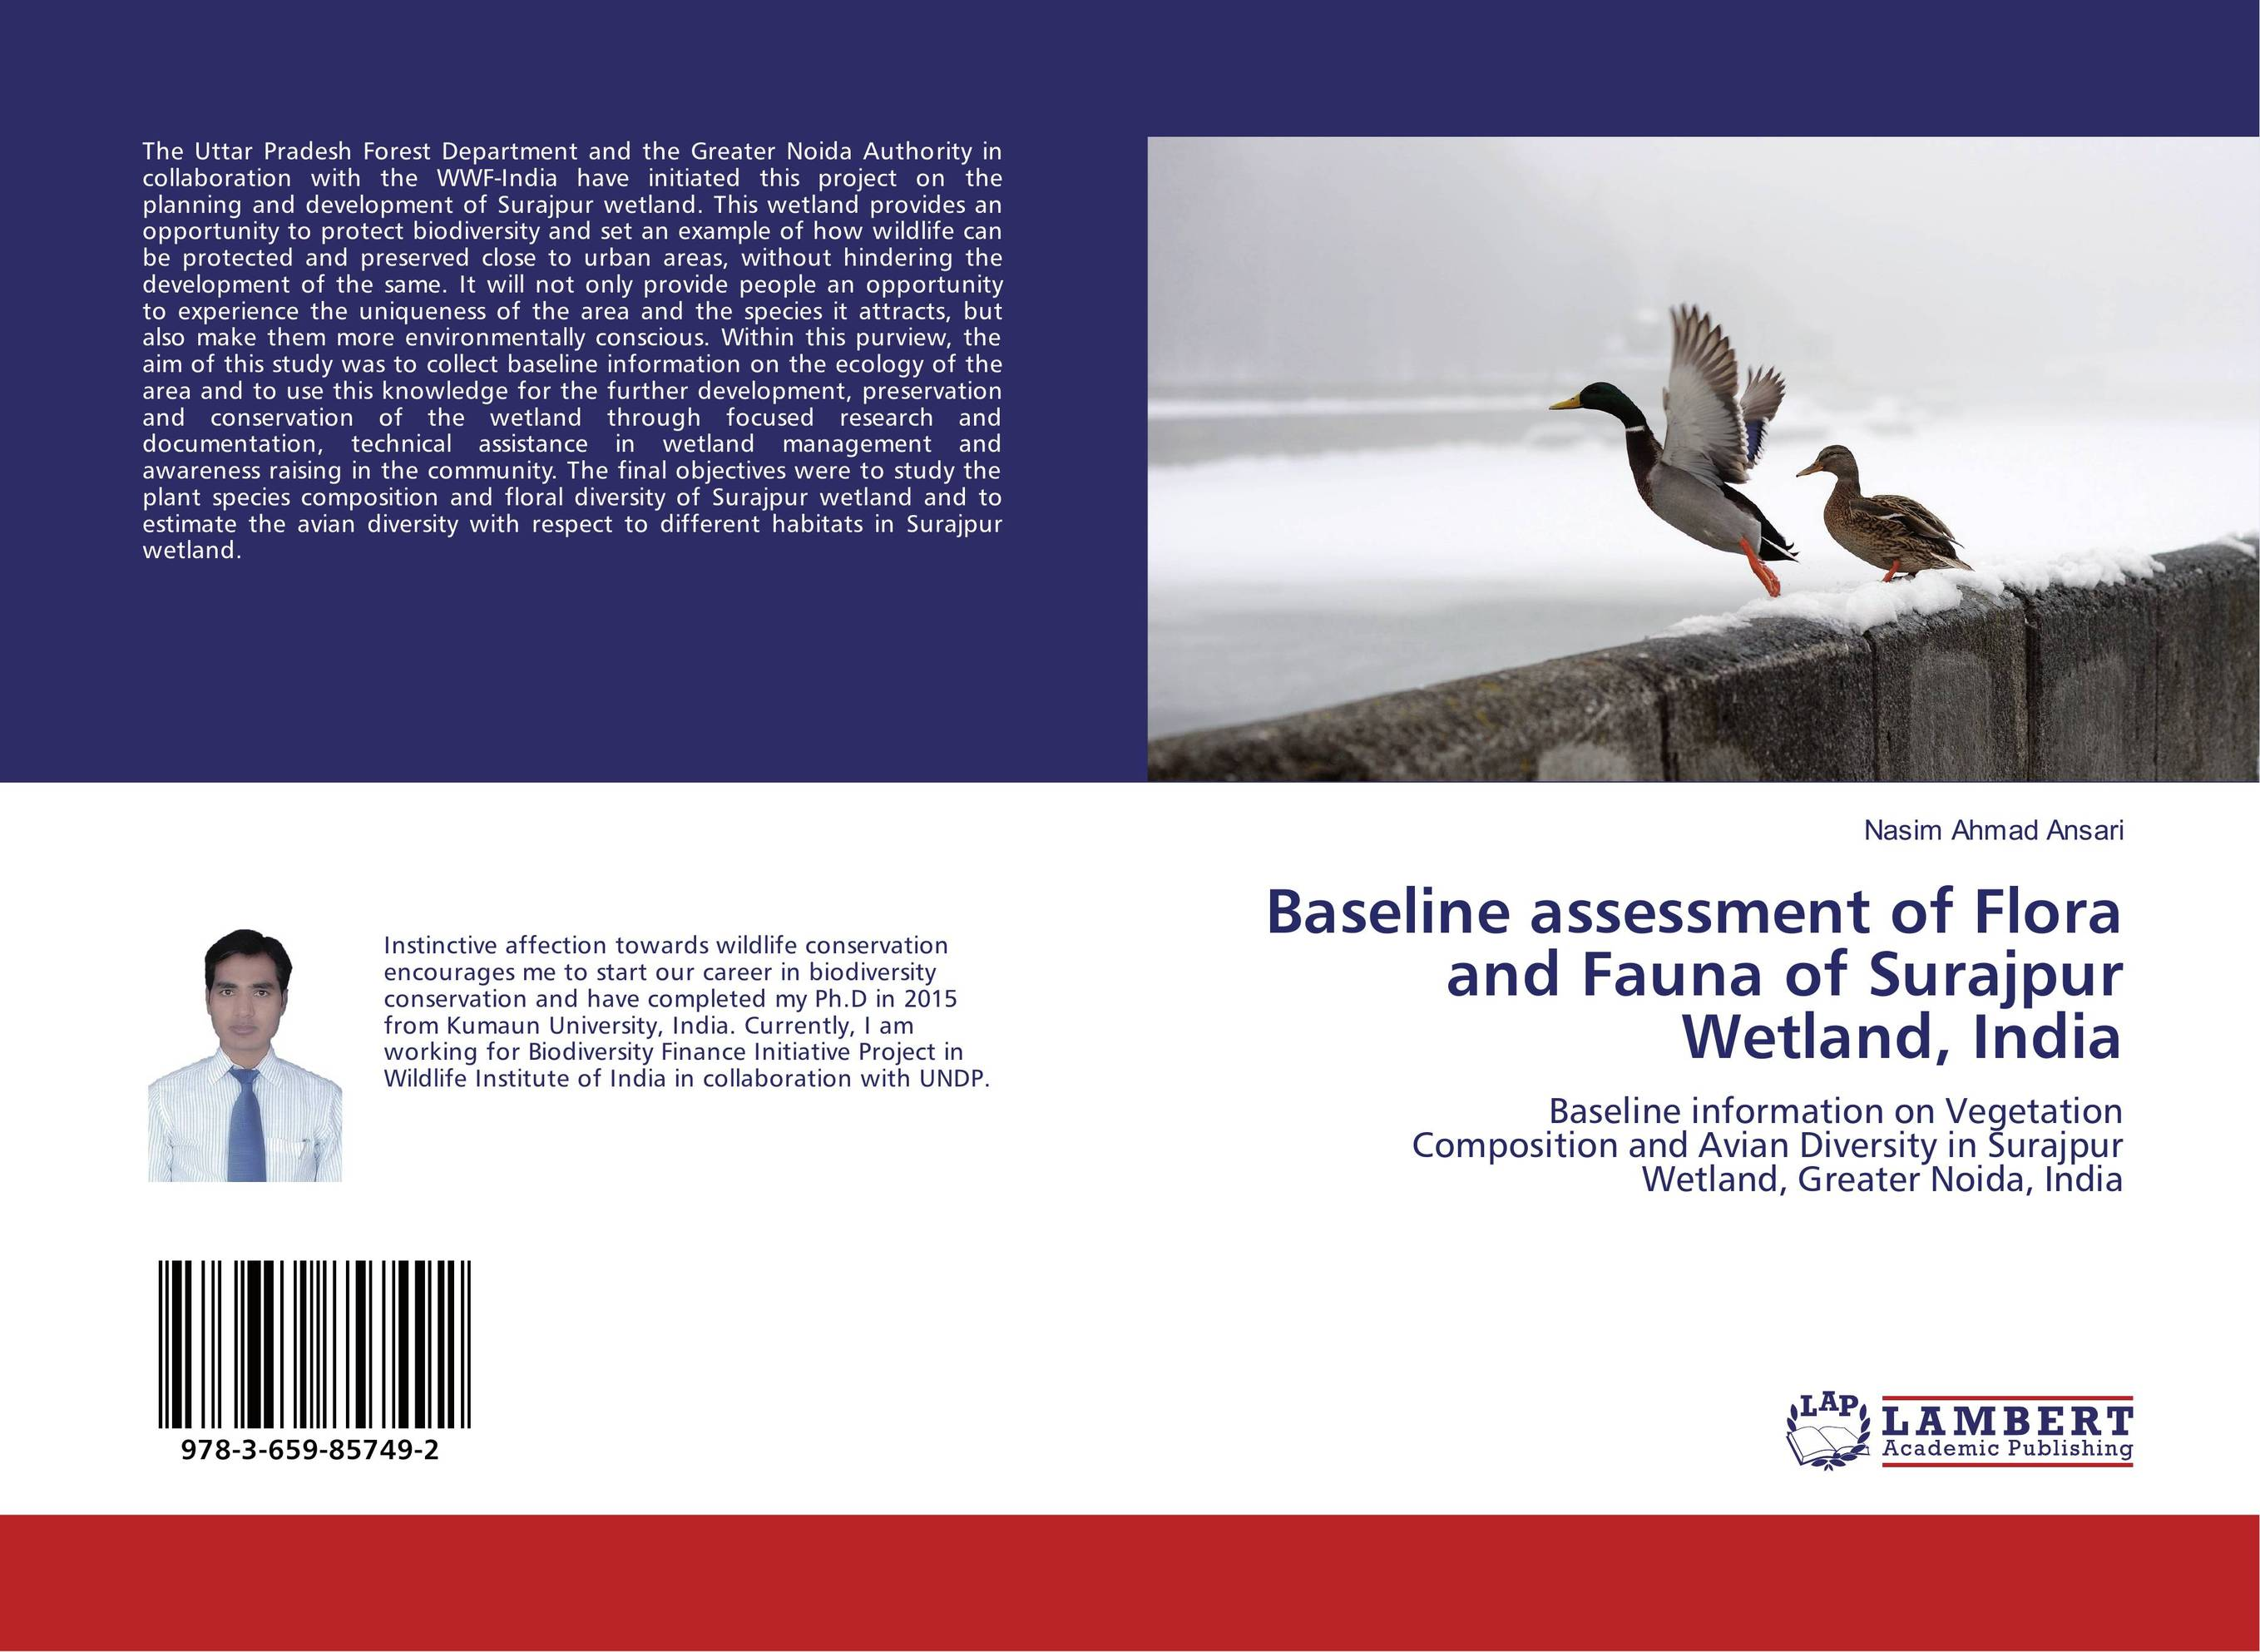 Baseline assessment of Flora and Fauna of Surajpur Wetland, India bacterial composition of constructed wetland s biofilm